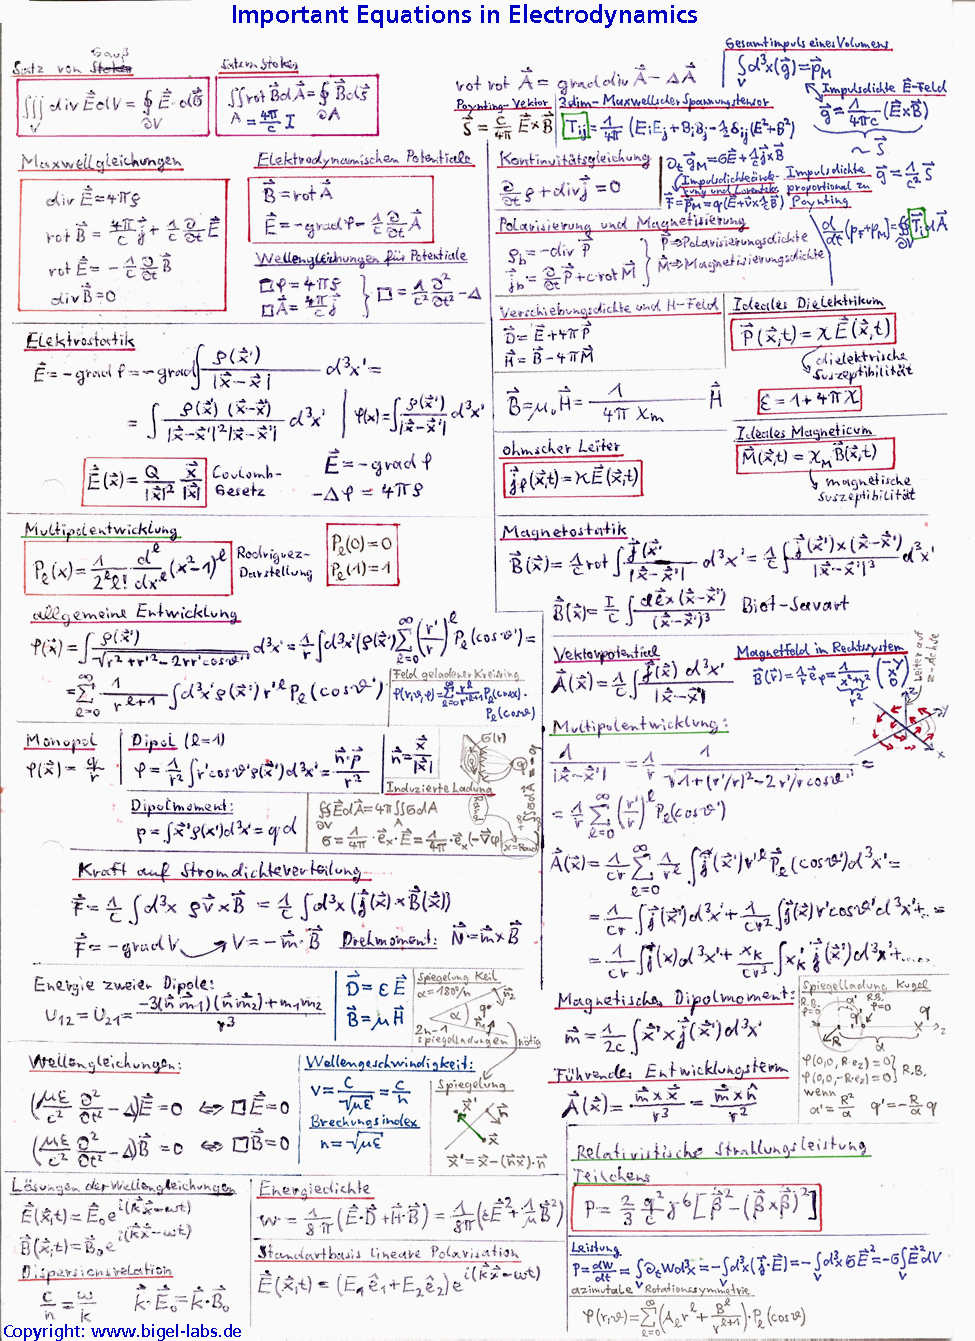 Important Equations In Electrodynamics